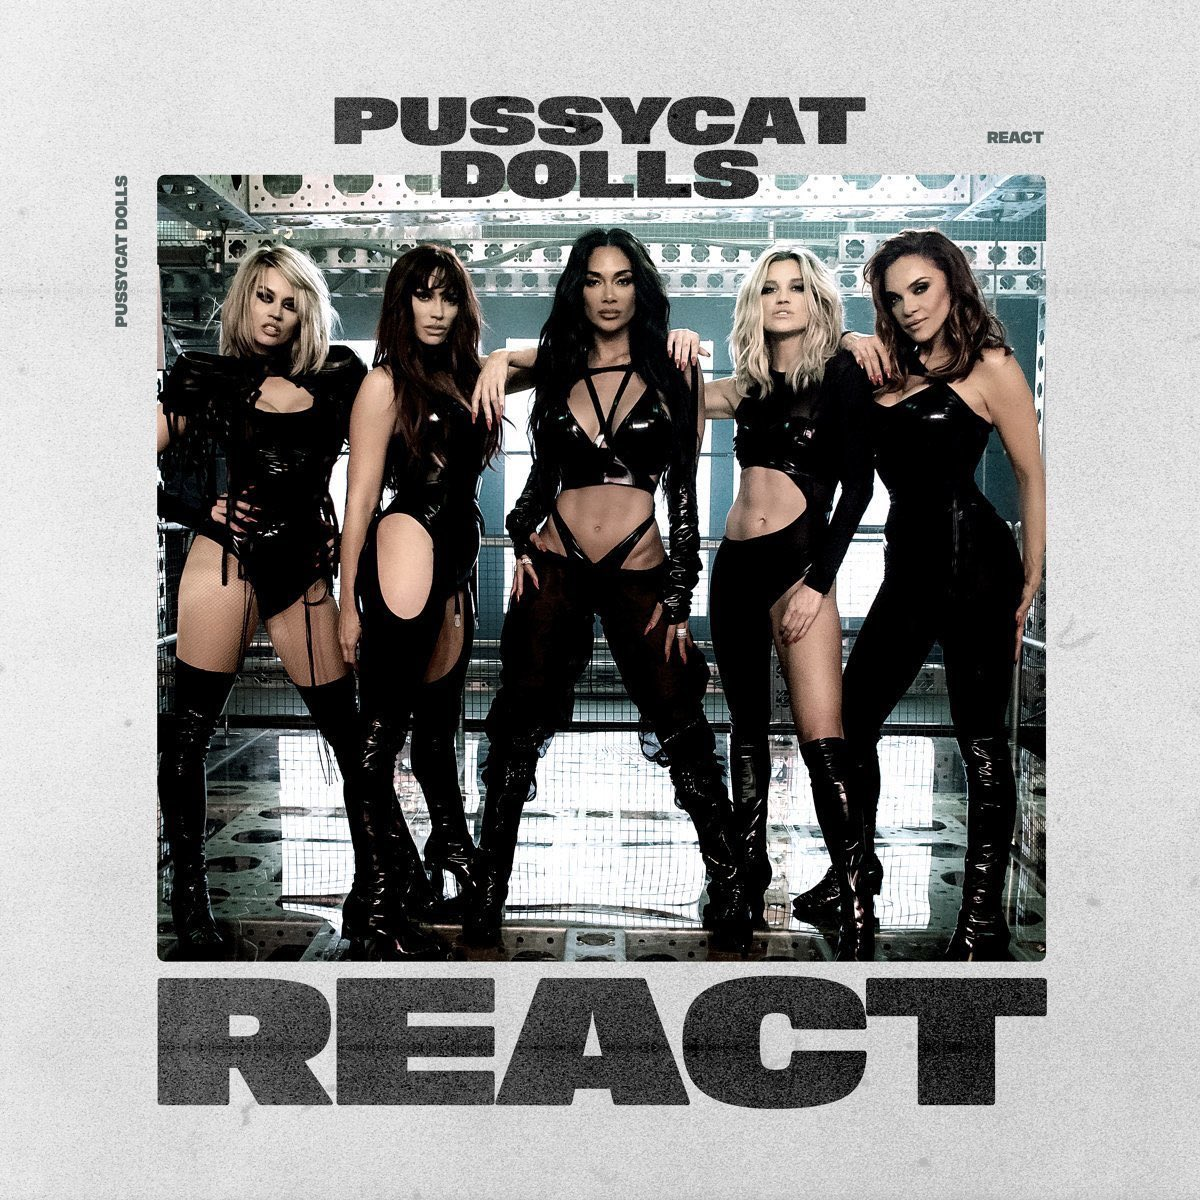 pussycat-dolls-react-tgj.jpeg